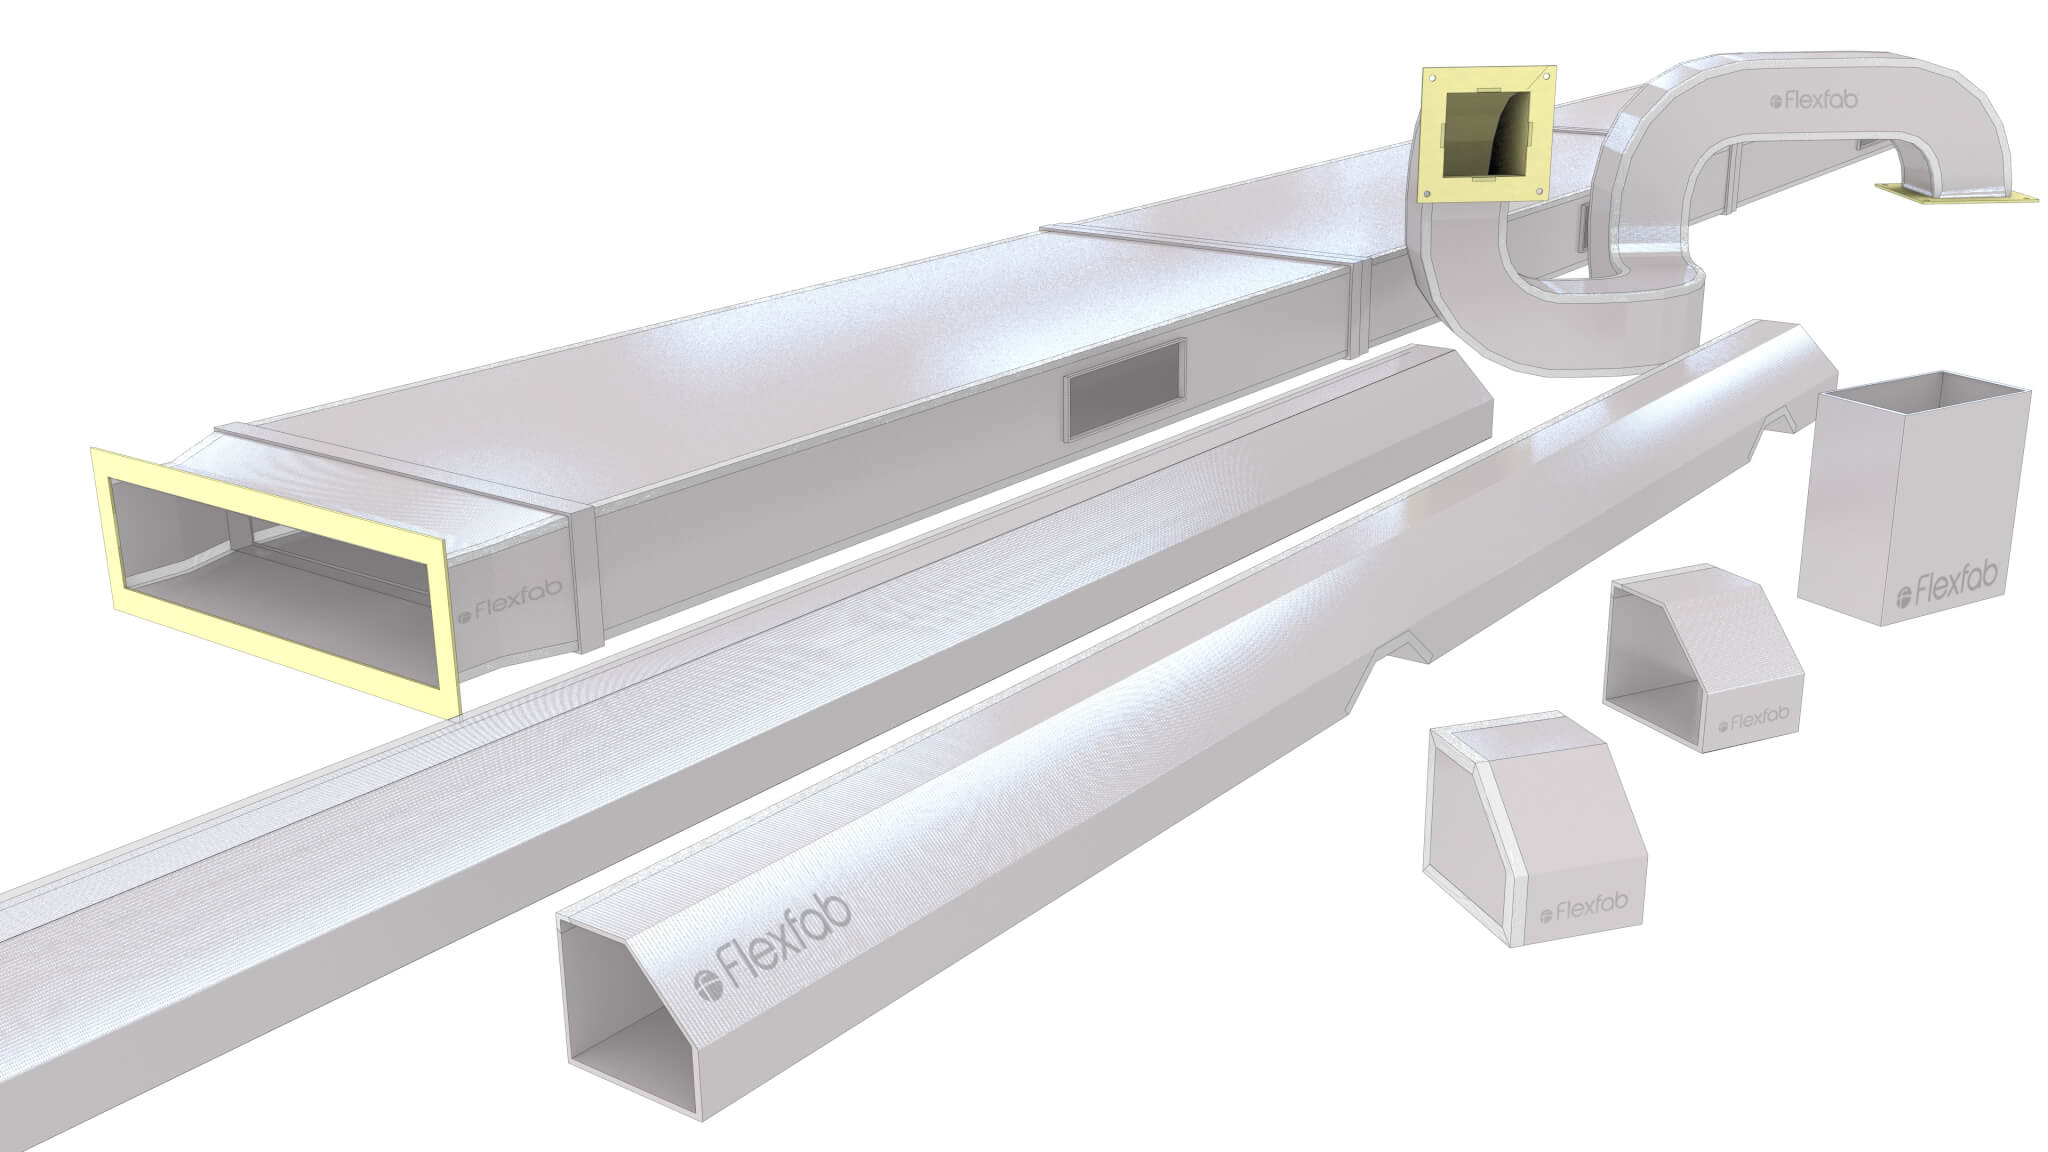 Light-weight rigid ducting for Rail Vehicle HVAC systems